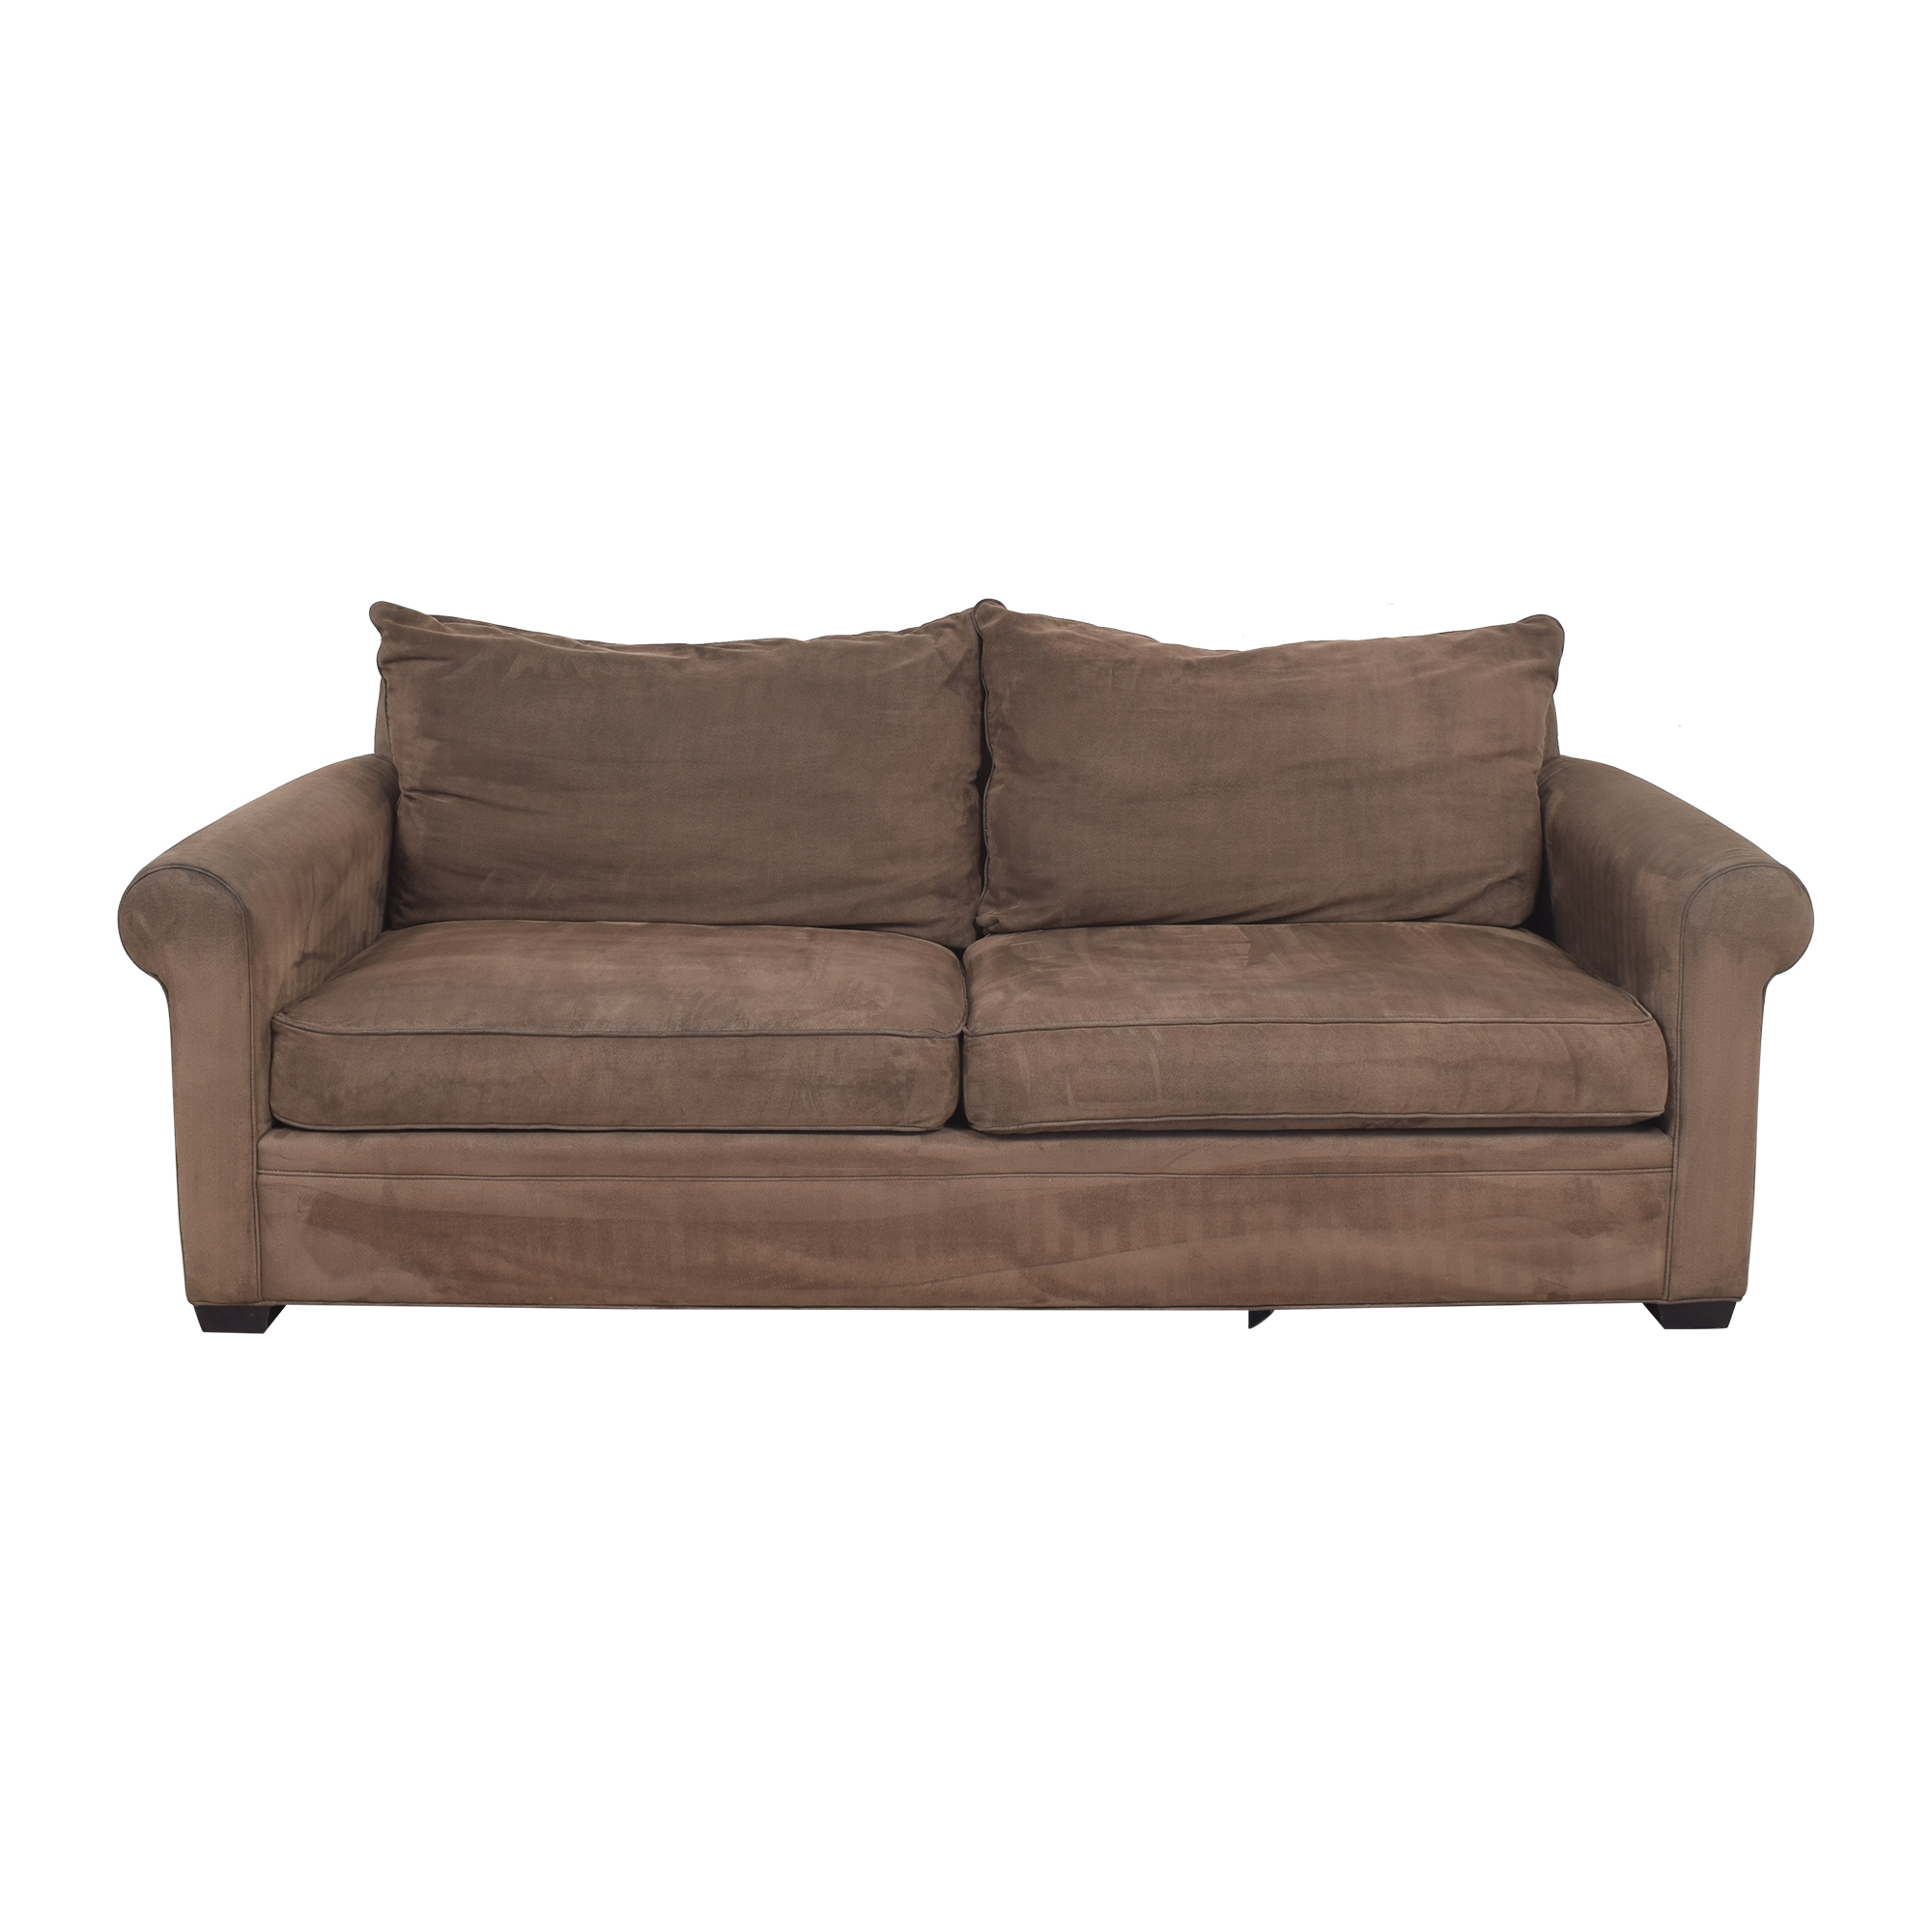 Macy's Macy's Modern Concepts Two Cushion Sofa second hand